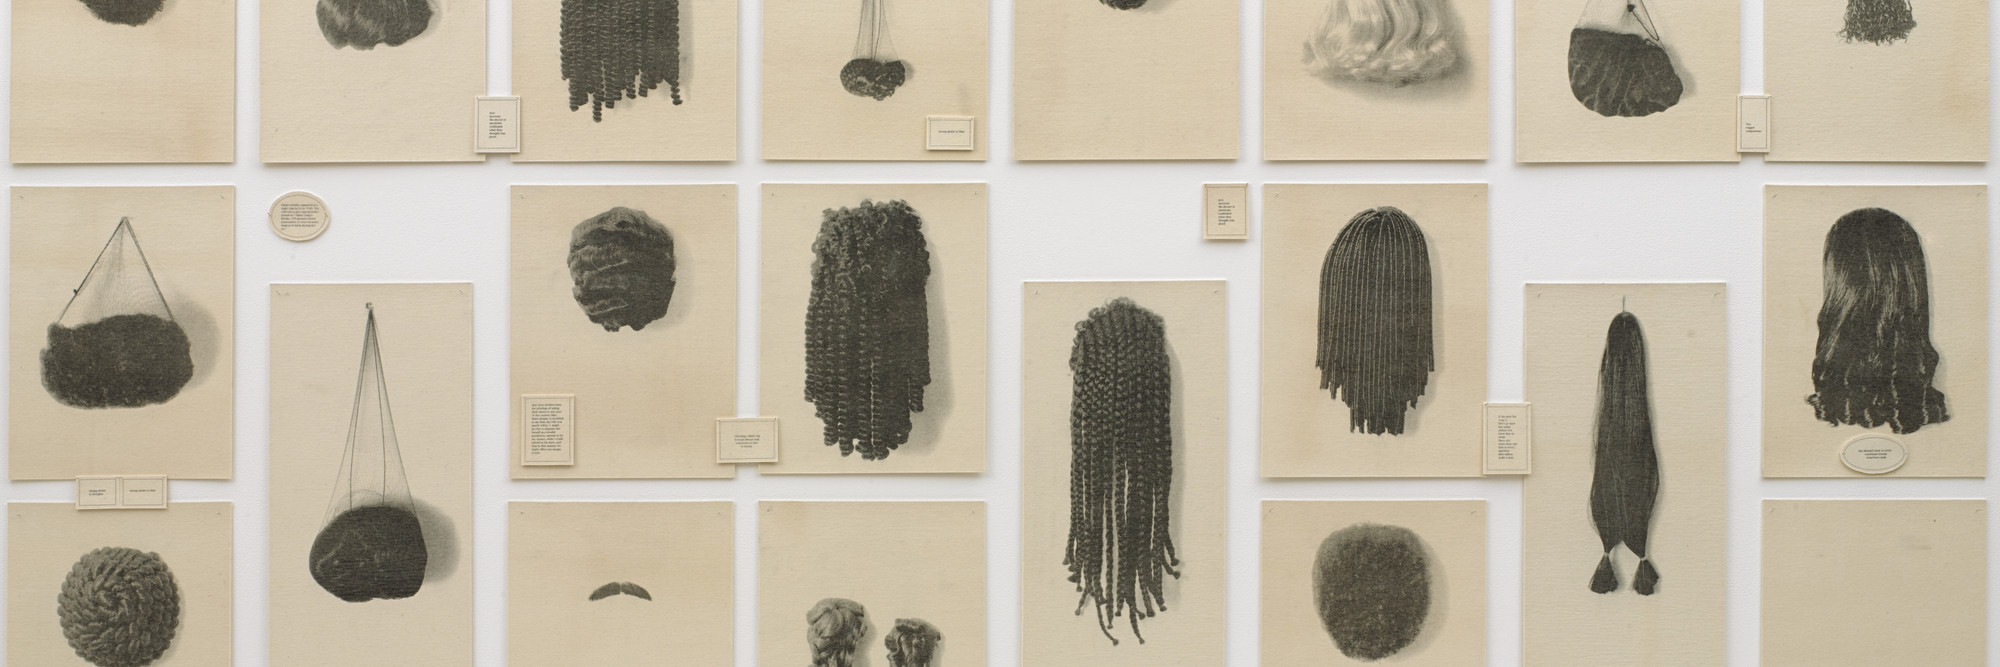 Lorna Simpson. Wigs (Portfolio). 1994. Portfolio of 21 lithographs on felt, with 17 lithographed felt text panels, overall: 6′ × 13′ 6″ (182.9 × 411.5 cm). Purchased with funds given by Agnes Gund, Howard B. Johnson, and Emily Fisher Landau. © 2017 Lorna Simpson. Photo: John Wronn